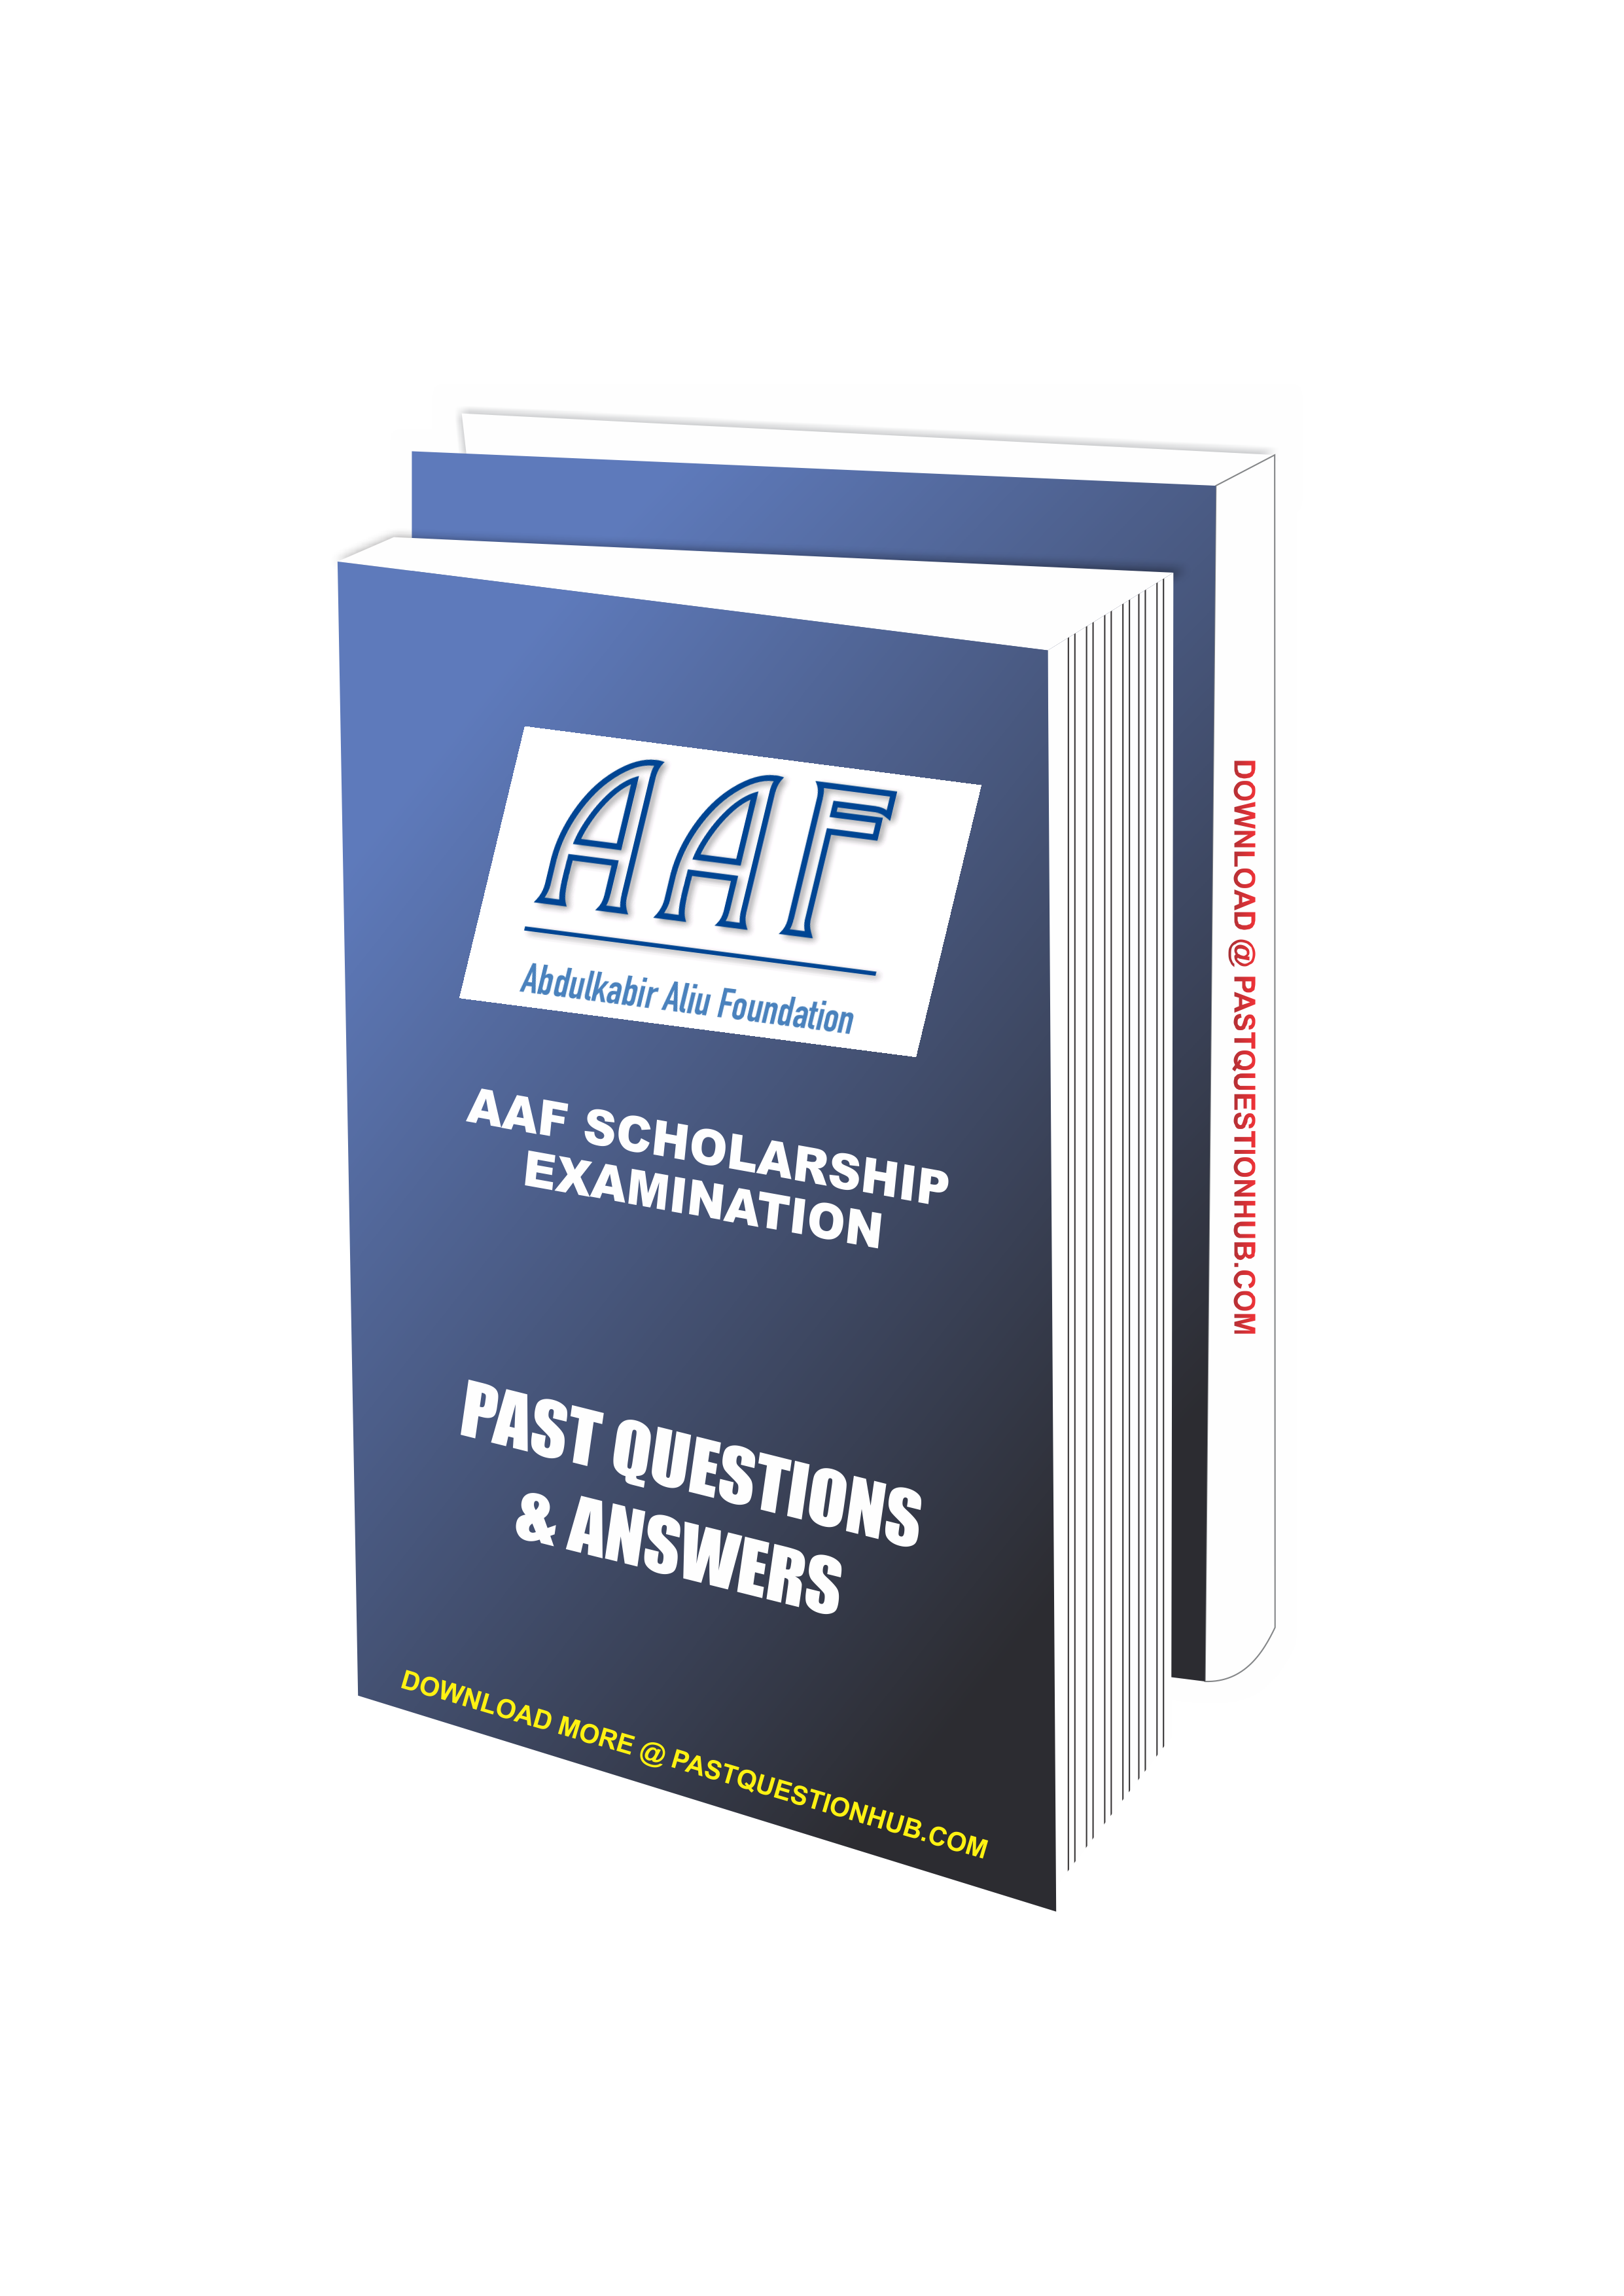 AAF Scholarship Past Questions and Answers | Abdulkabir Aliu Foundation